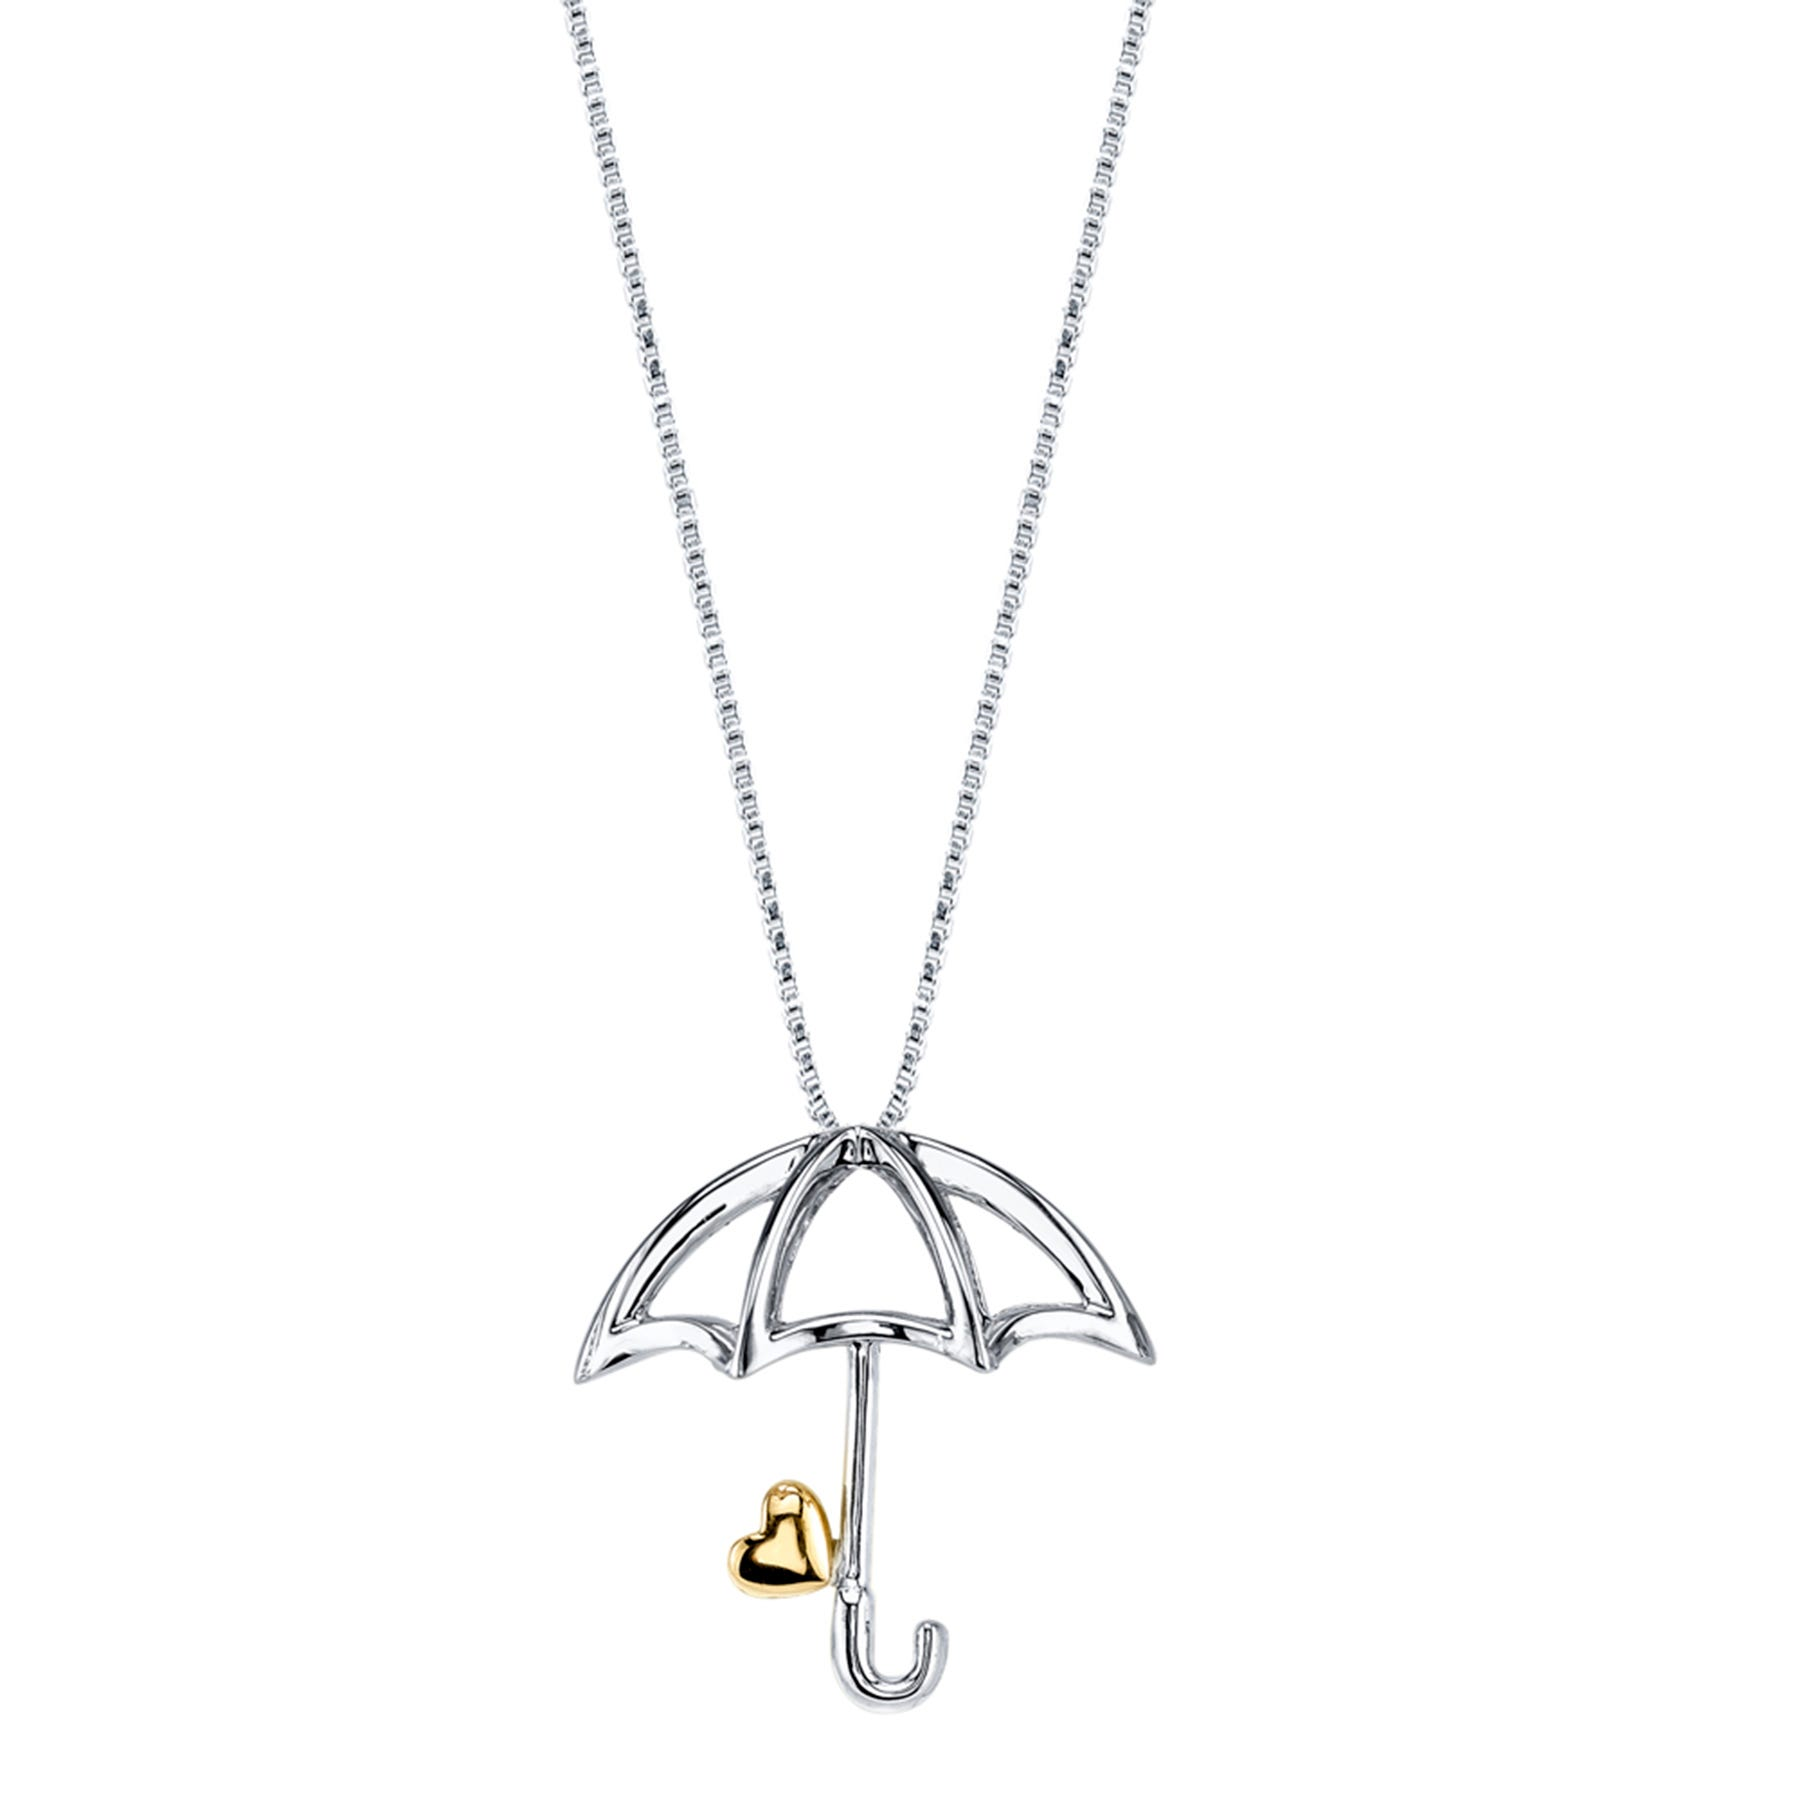 DISNEY© Pinocchio Two-Tone Umbrella Necklace